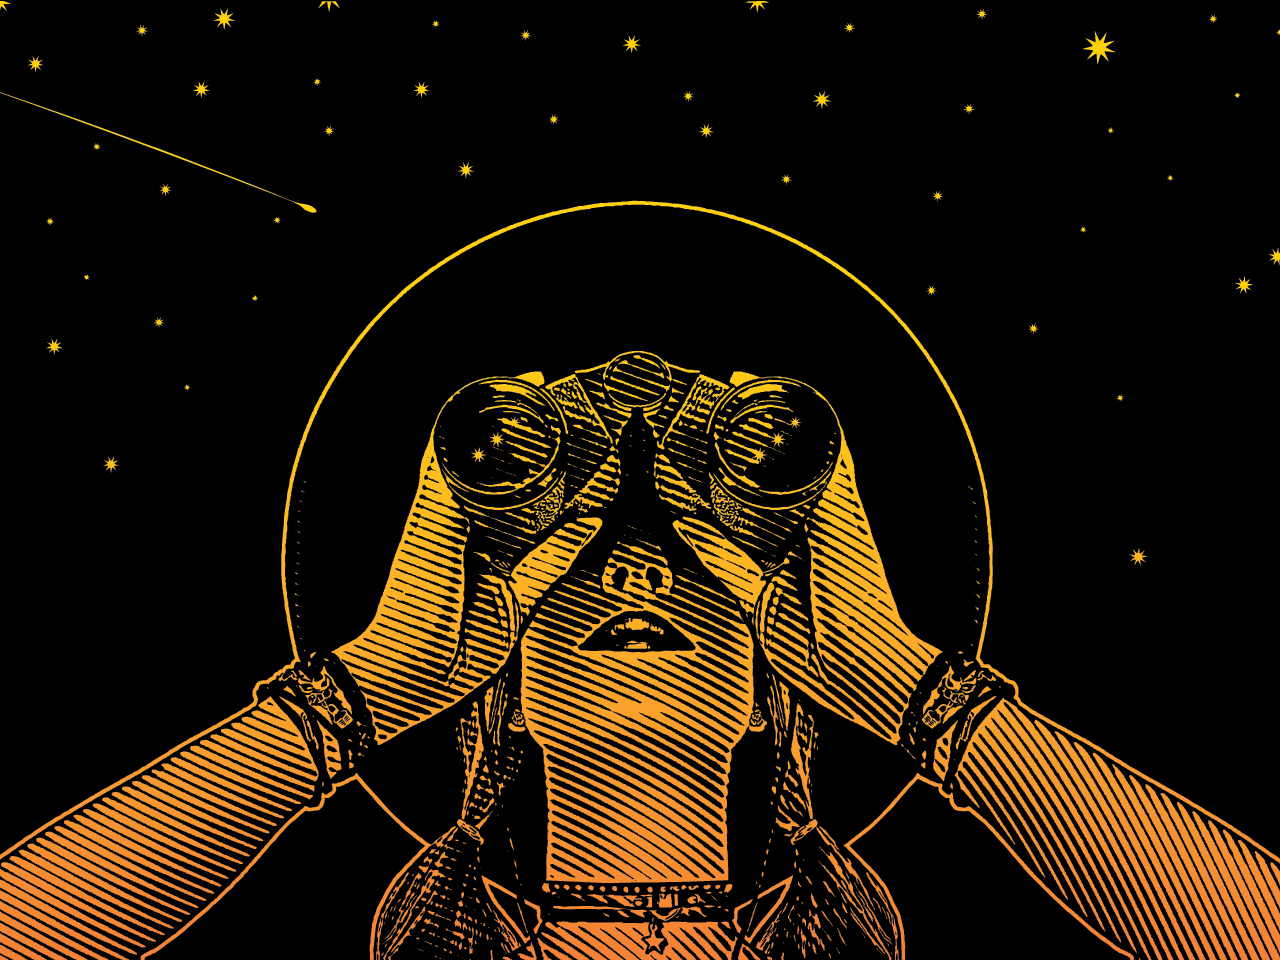 An illustration of a woman looking through binoculars into the night sky